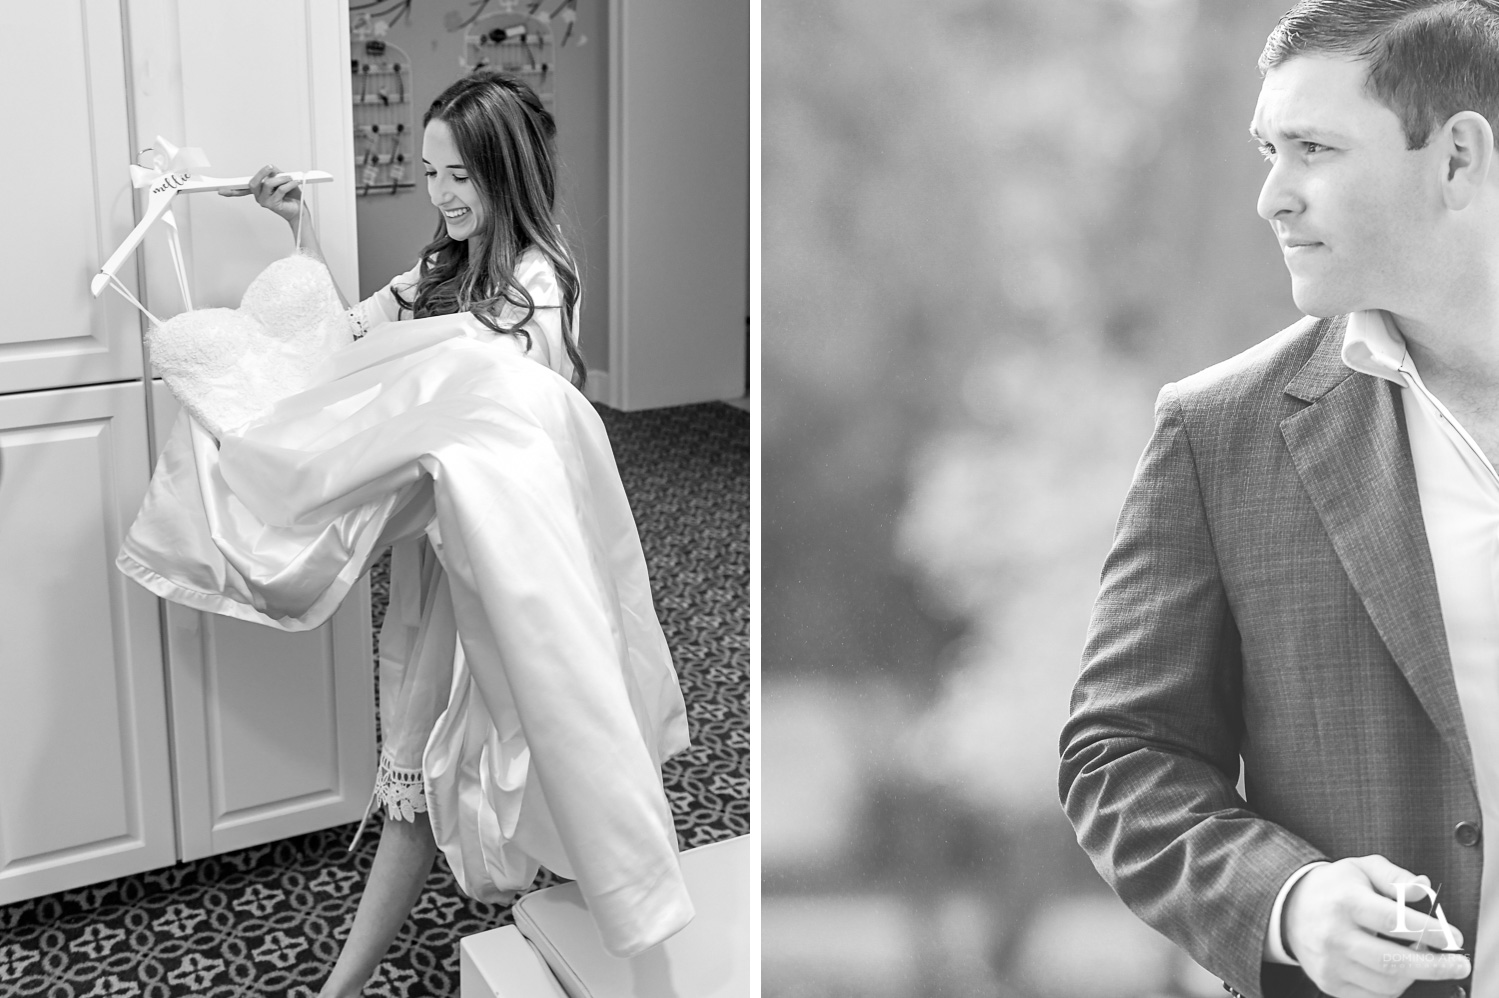 B&W wedding photography at Beautiful Intimate Wedding at Mizner Country Club by Domino Arts Photography